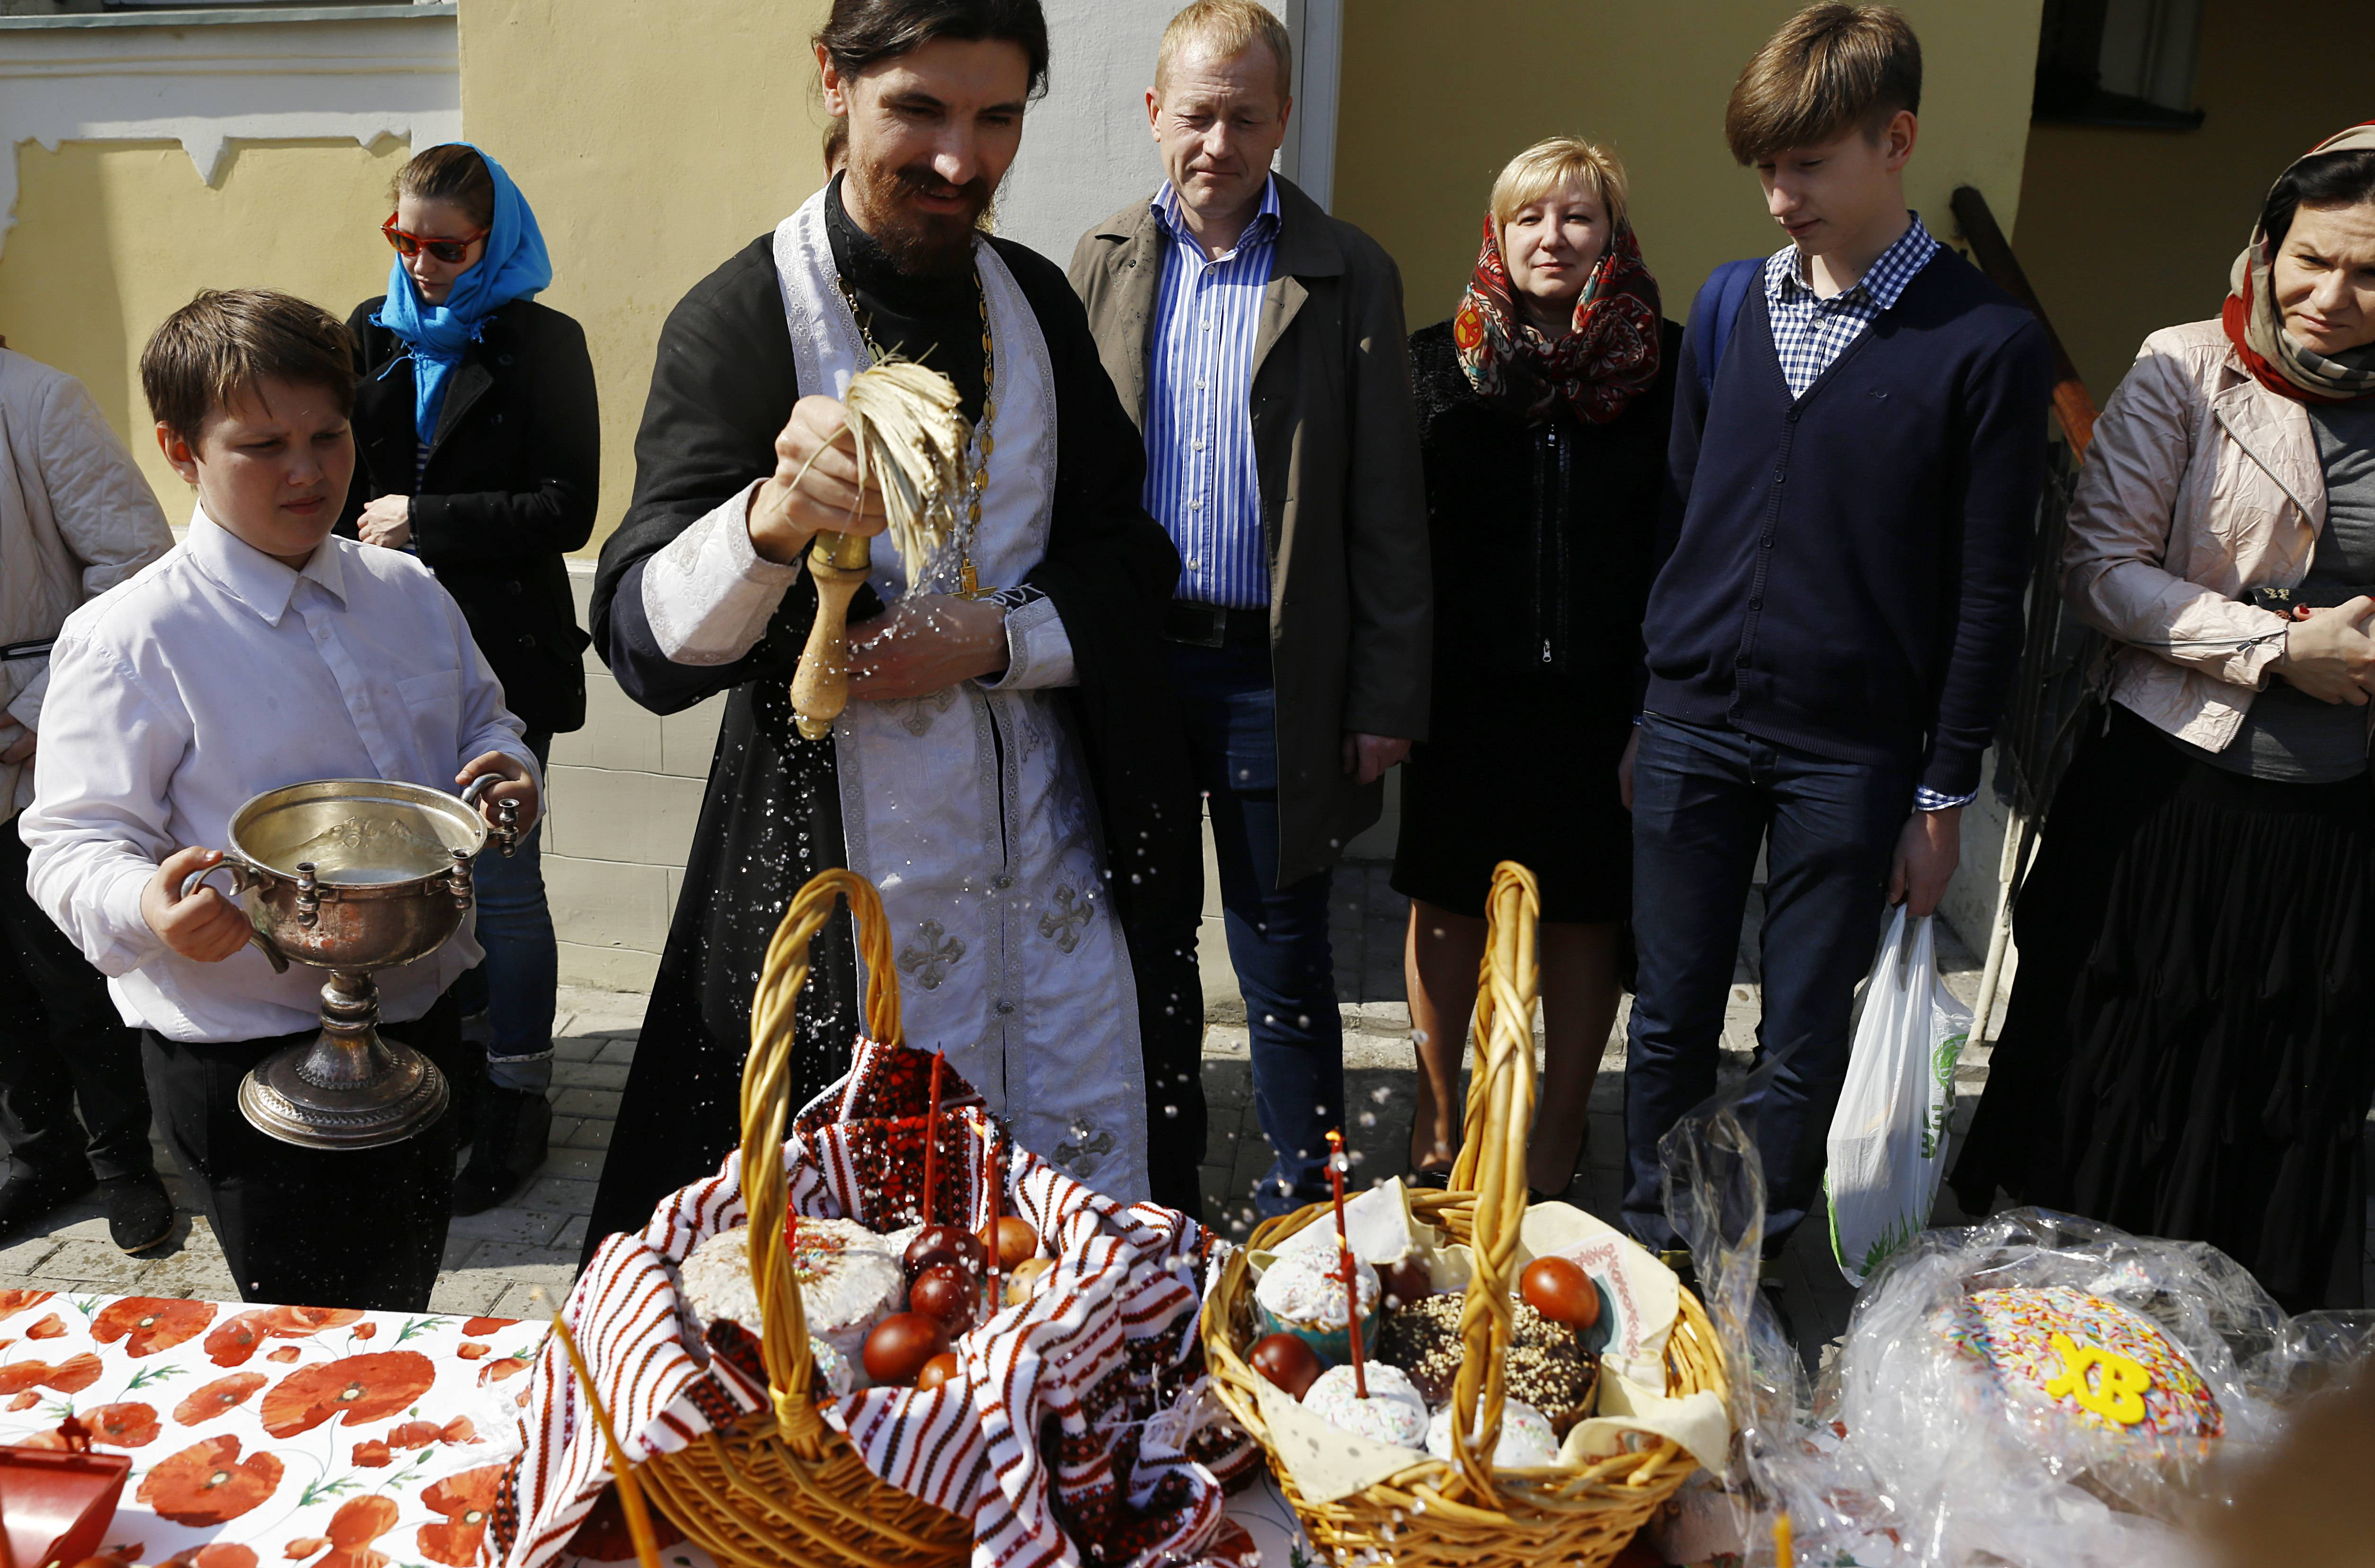 A Russian Orthodox priest blesses traditional Easter cakes and painted eggs prepared for an Easter celebration, at a church in Moscow, Russia, Saturday, April 19.